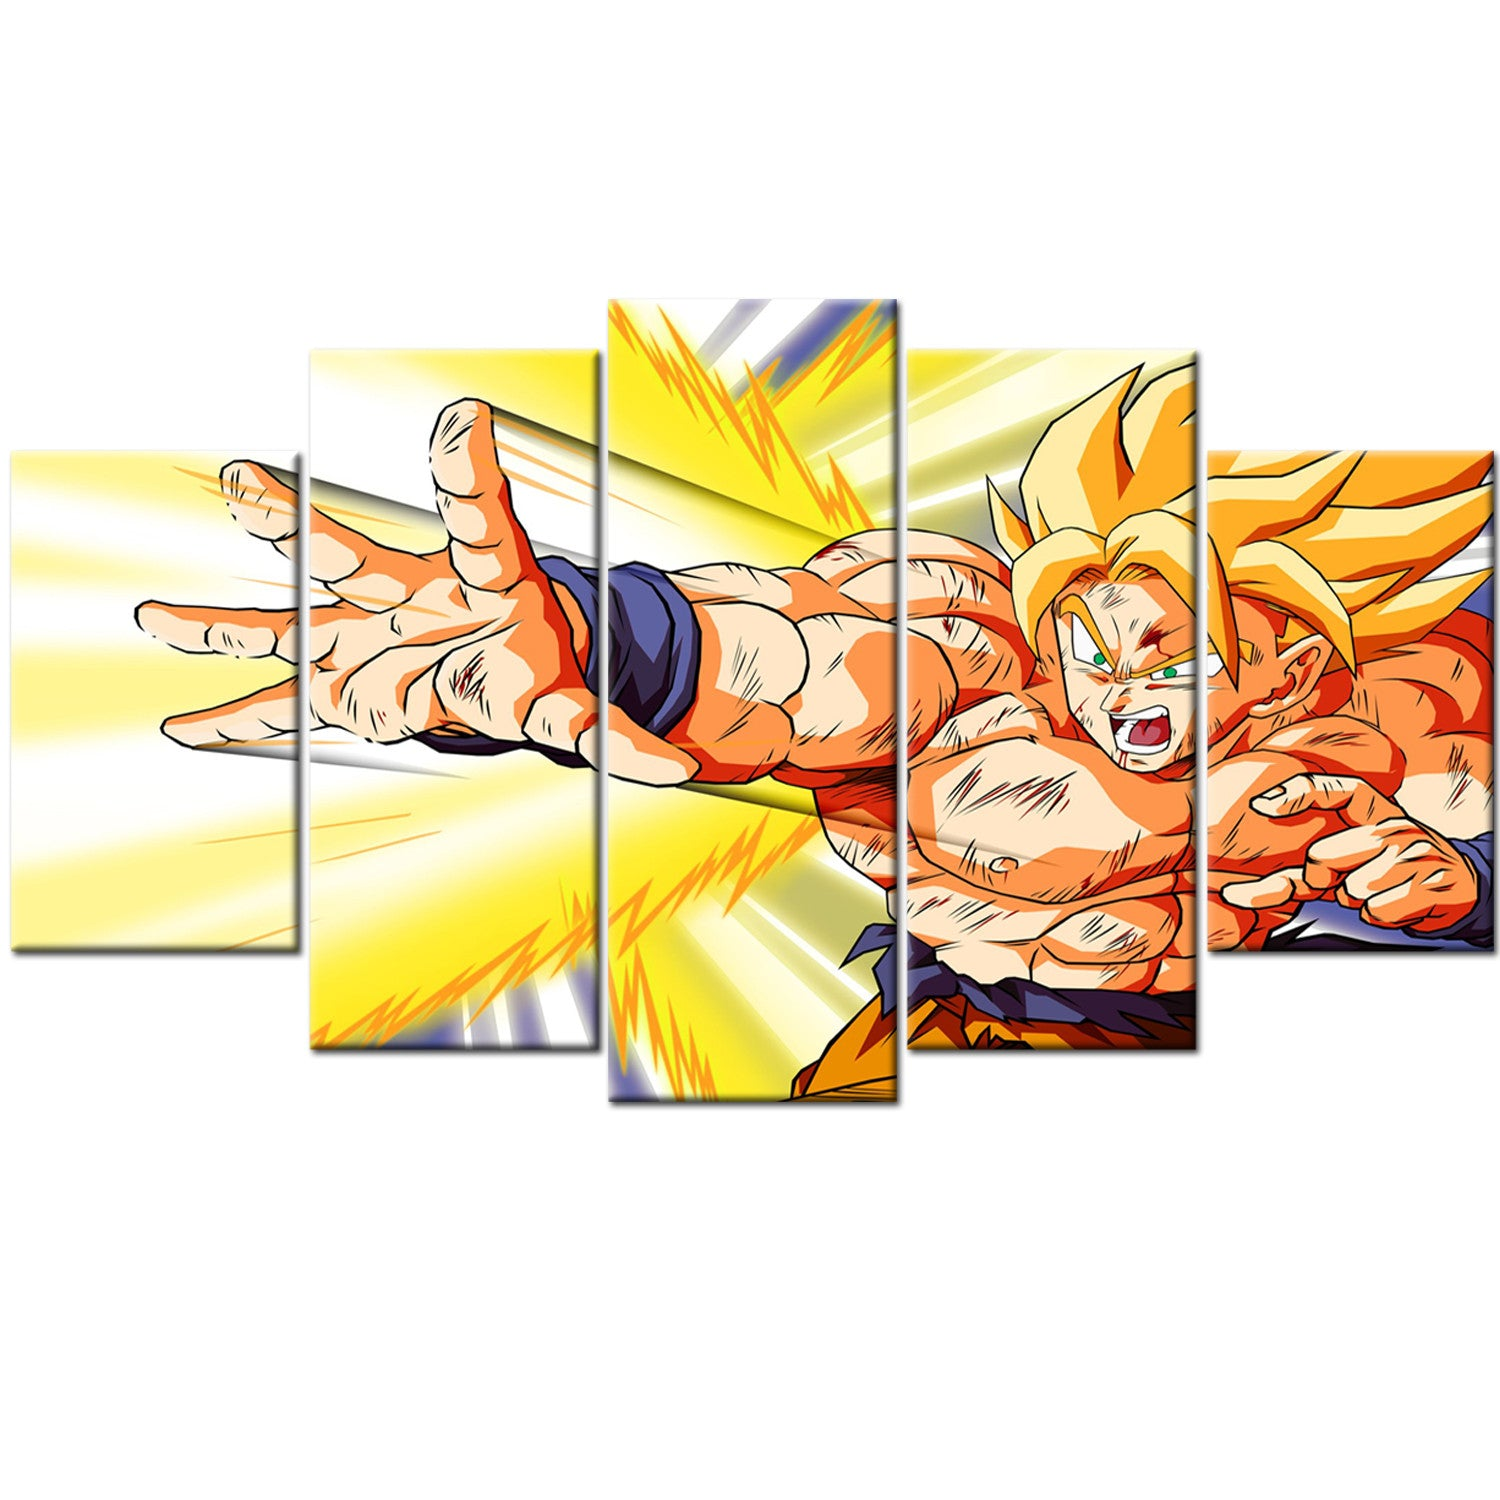 Dragon Ball Z Super Saiyan Goku 5 Piece Canvas Wallart - HD Quality